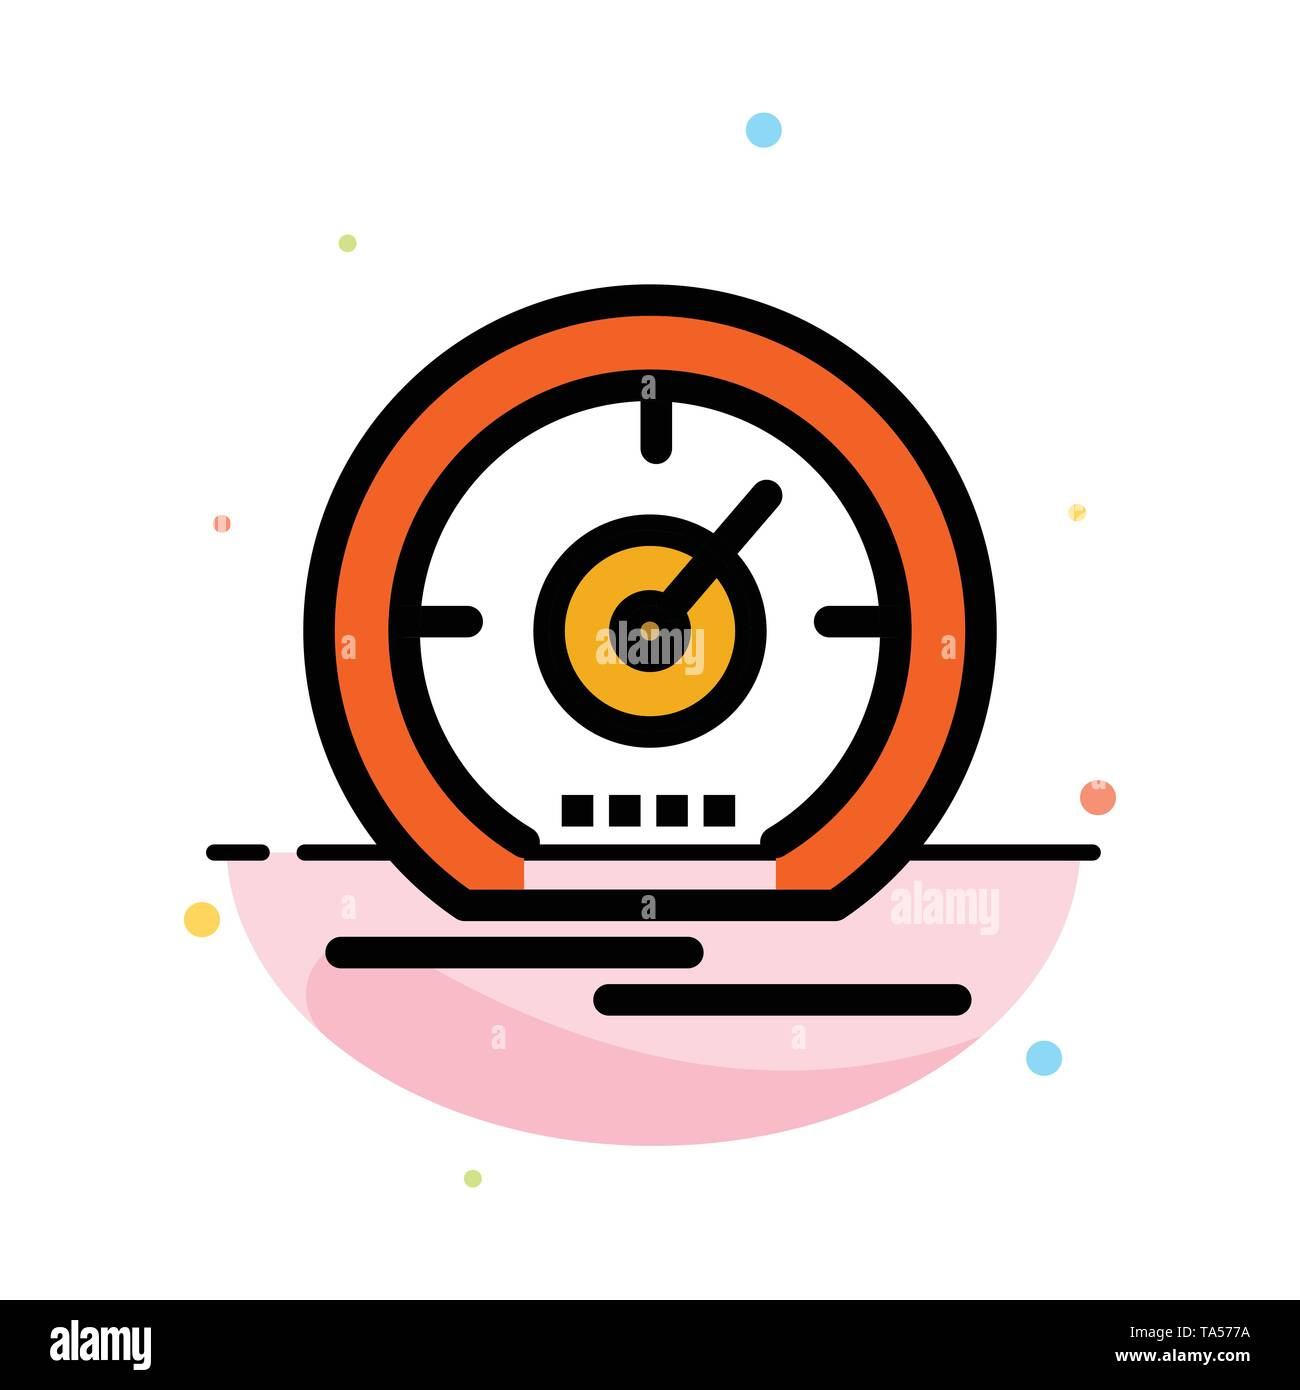 Gauge, Dashboard, Meter, Speed, Speedometer Abstract Flat Color Icon Template - Stock Image